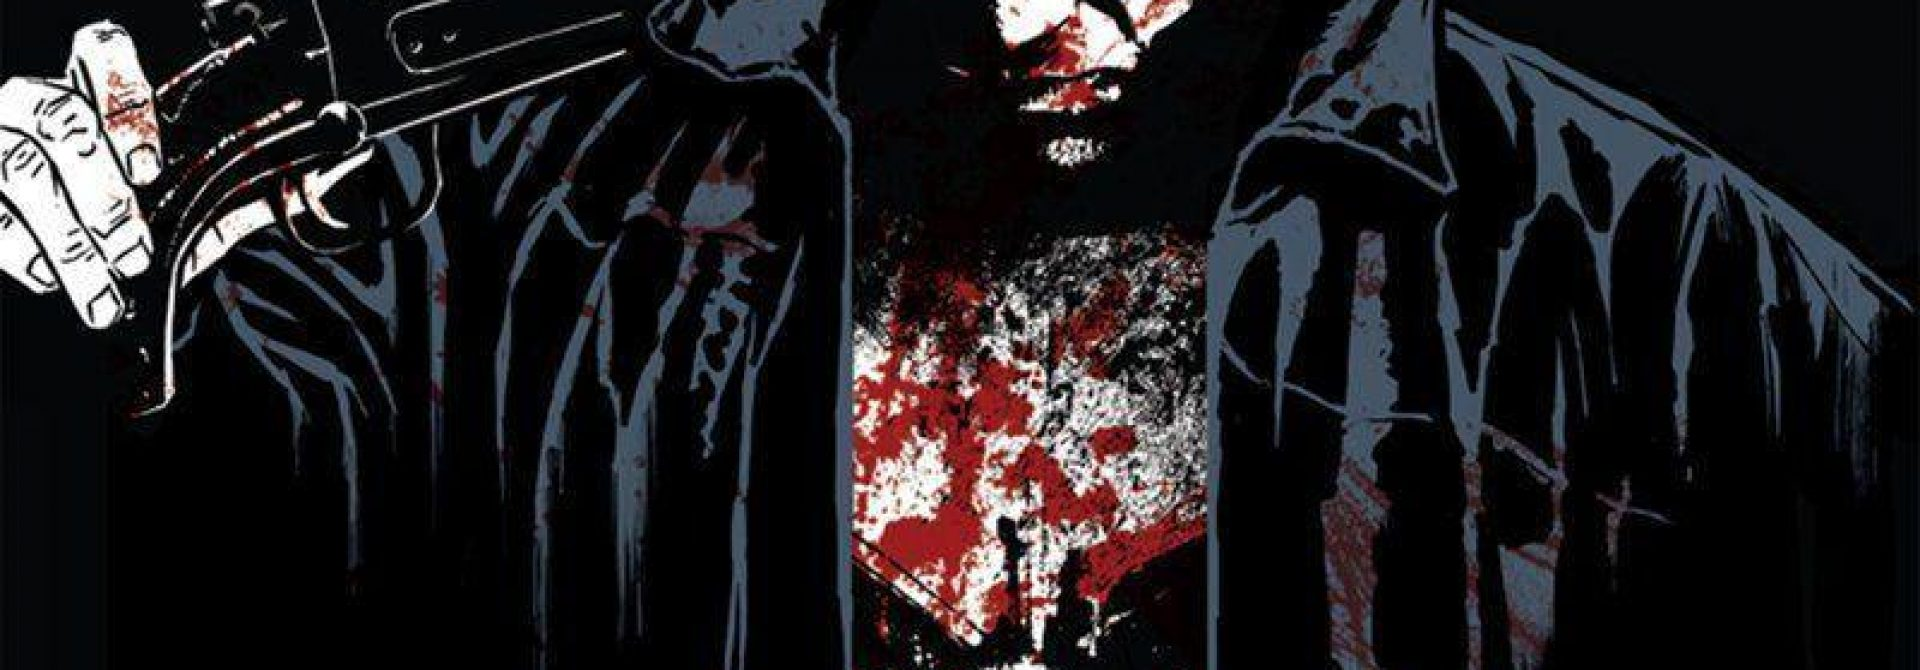 First Promotional Image For Marvel's The Punisher